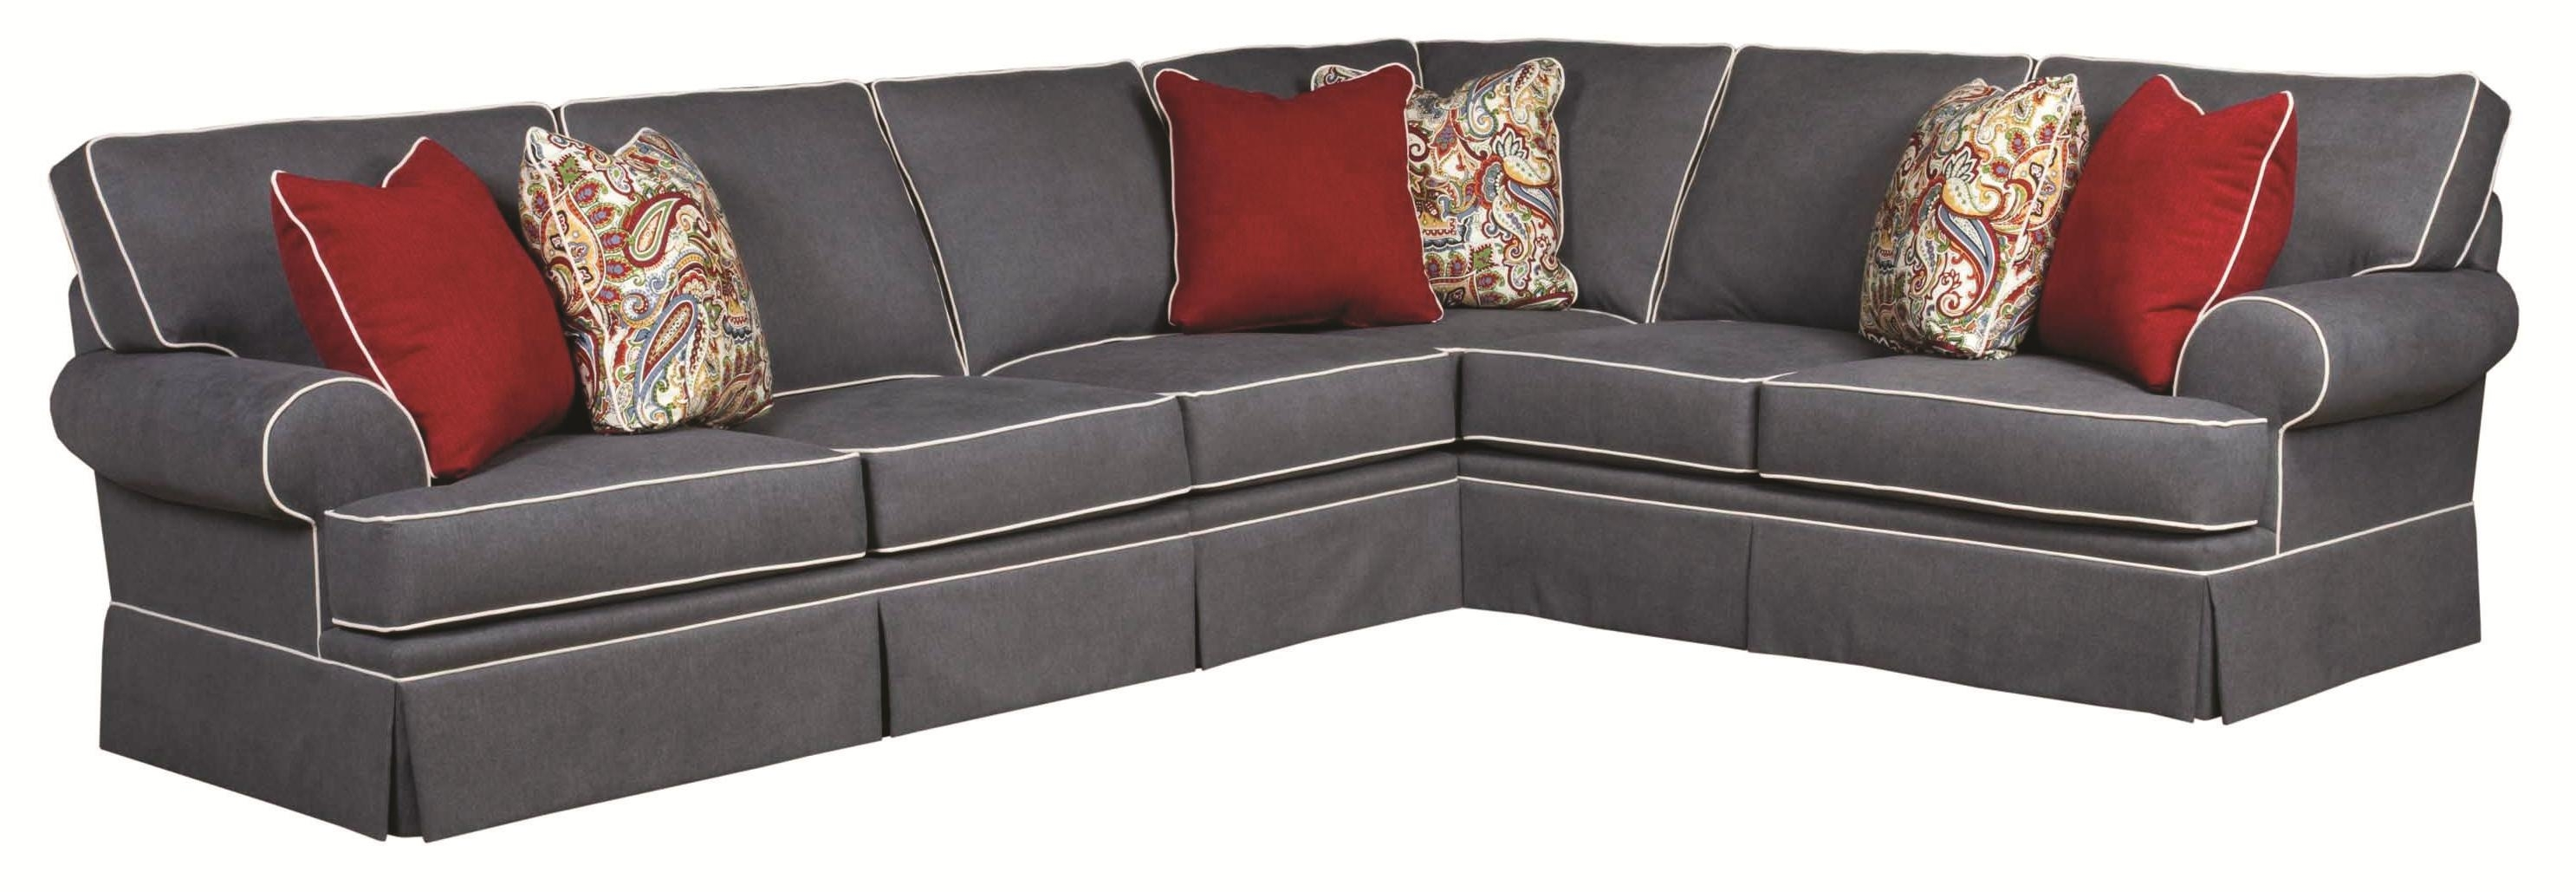 Broyhill Furniture Emily Traditional 3 Piece Sectional Sofa With Regarding Sam Levitz Sectional Sofas (View 2 of 10)